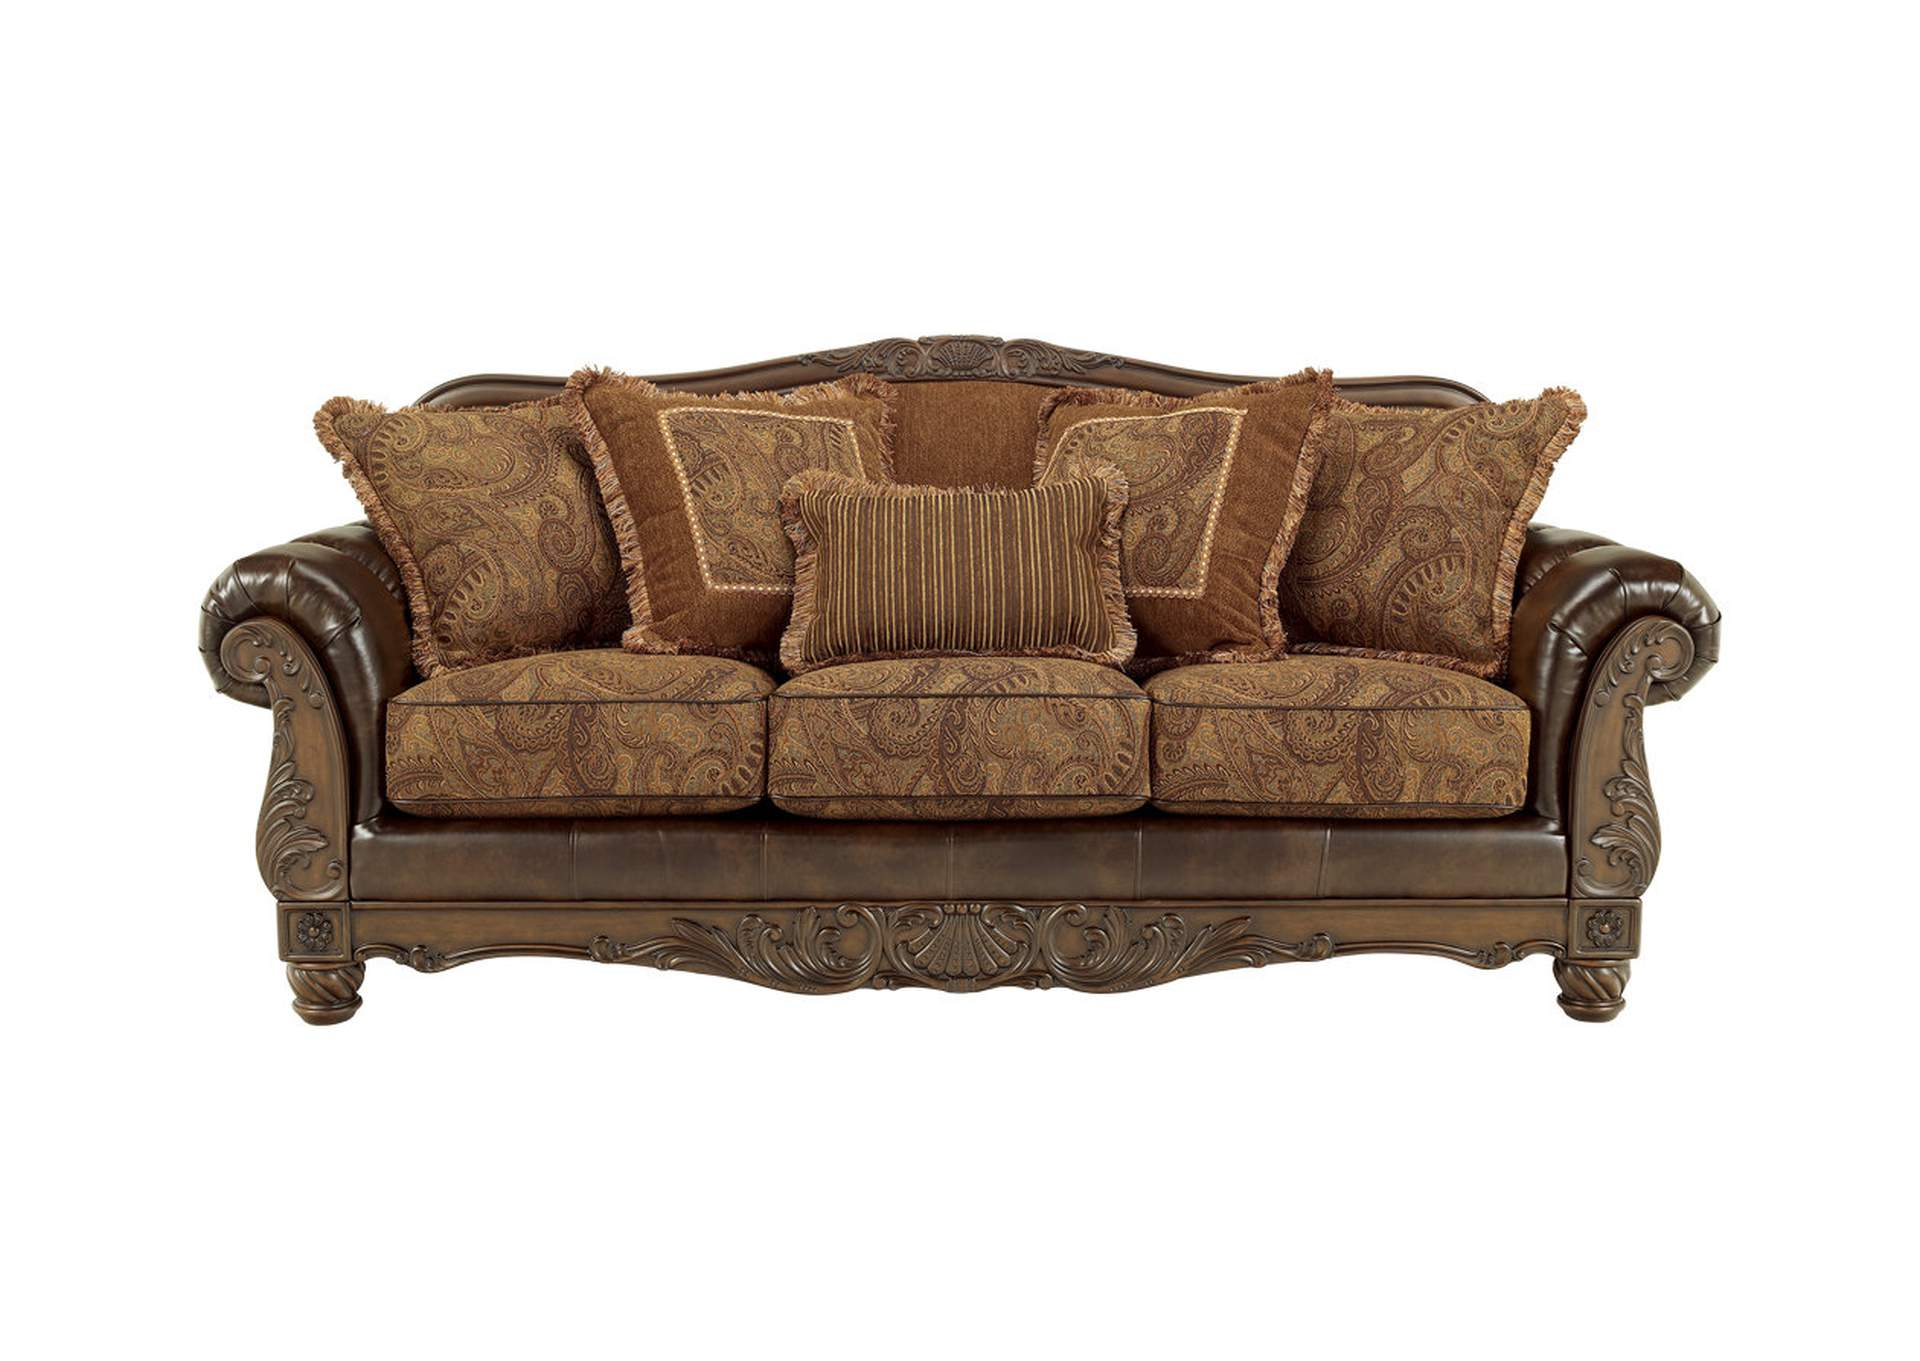 Fresco DuraBlend Antique Sofa,Signature Design By Ashley